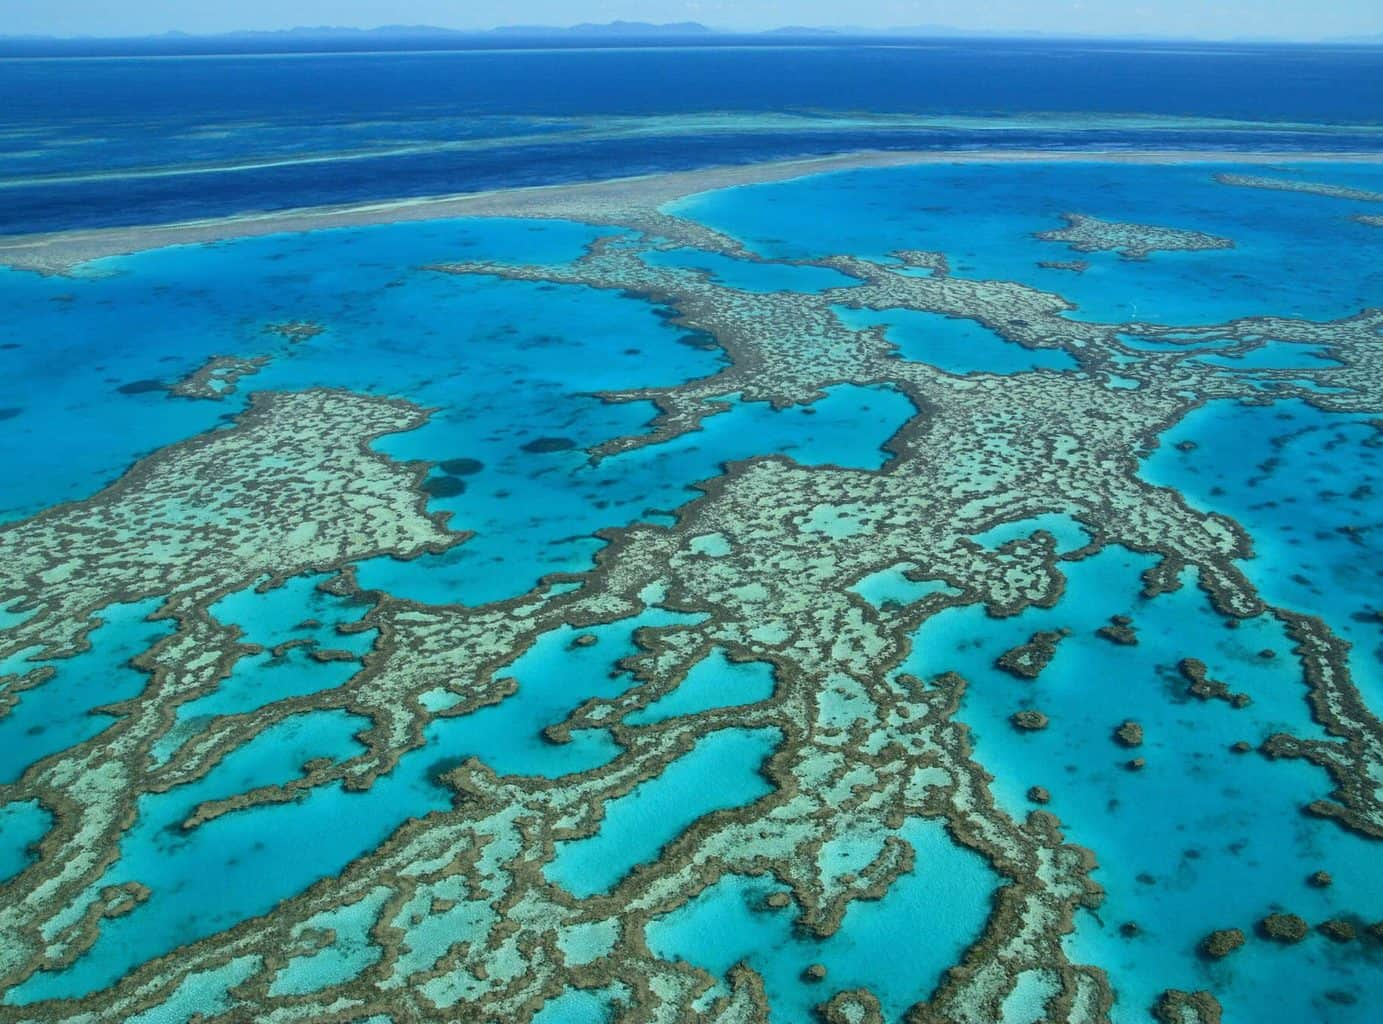 Oceania, Australia & New Zealand Travel - blue coral waters shot